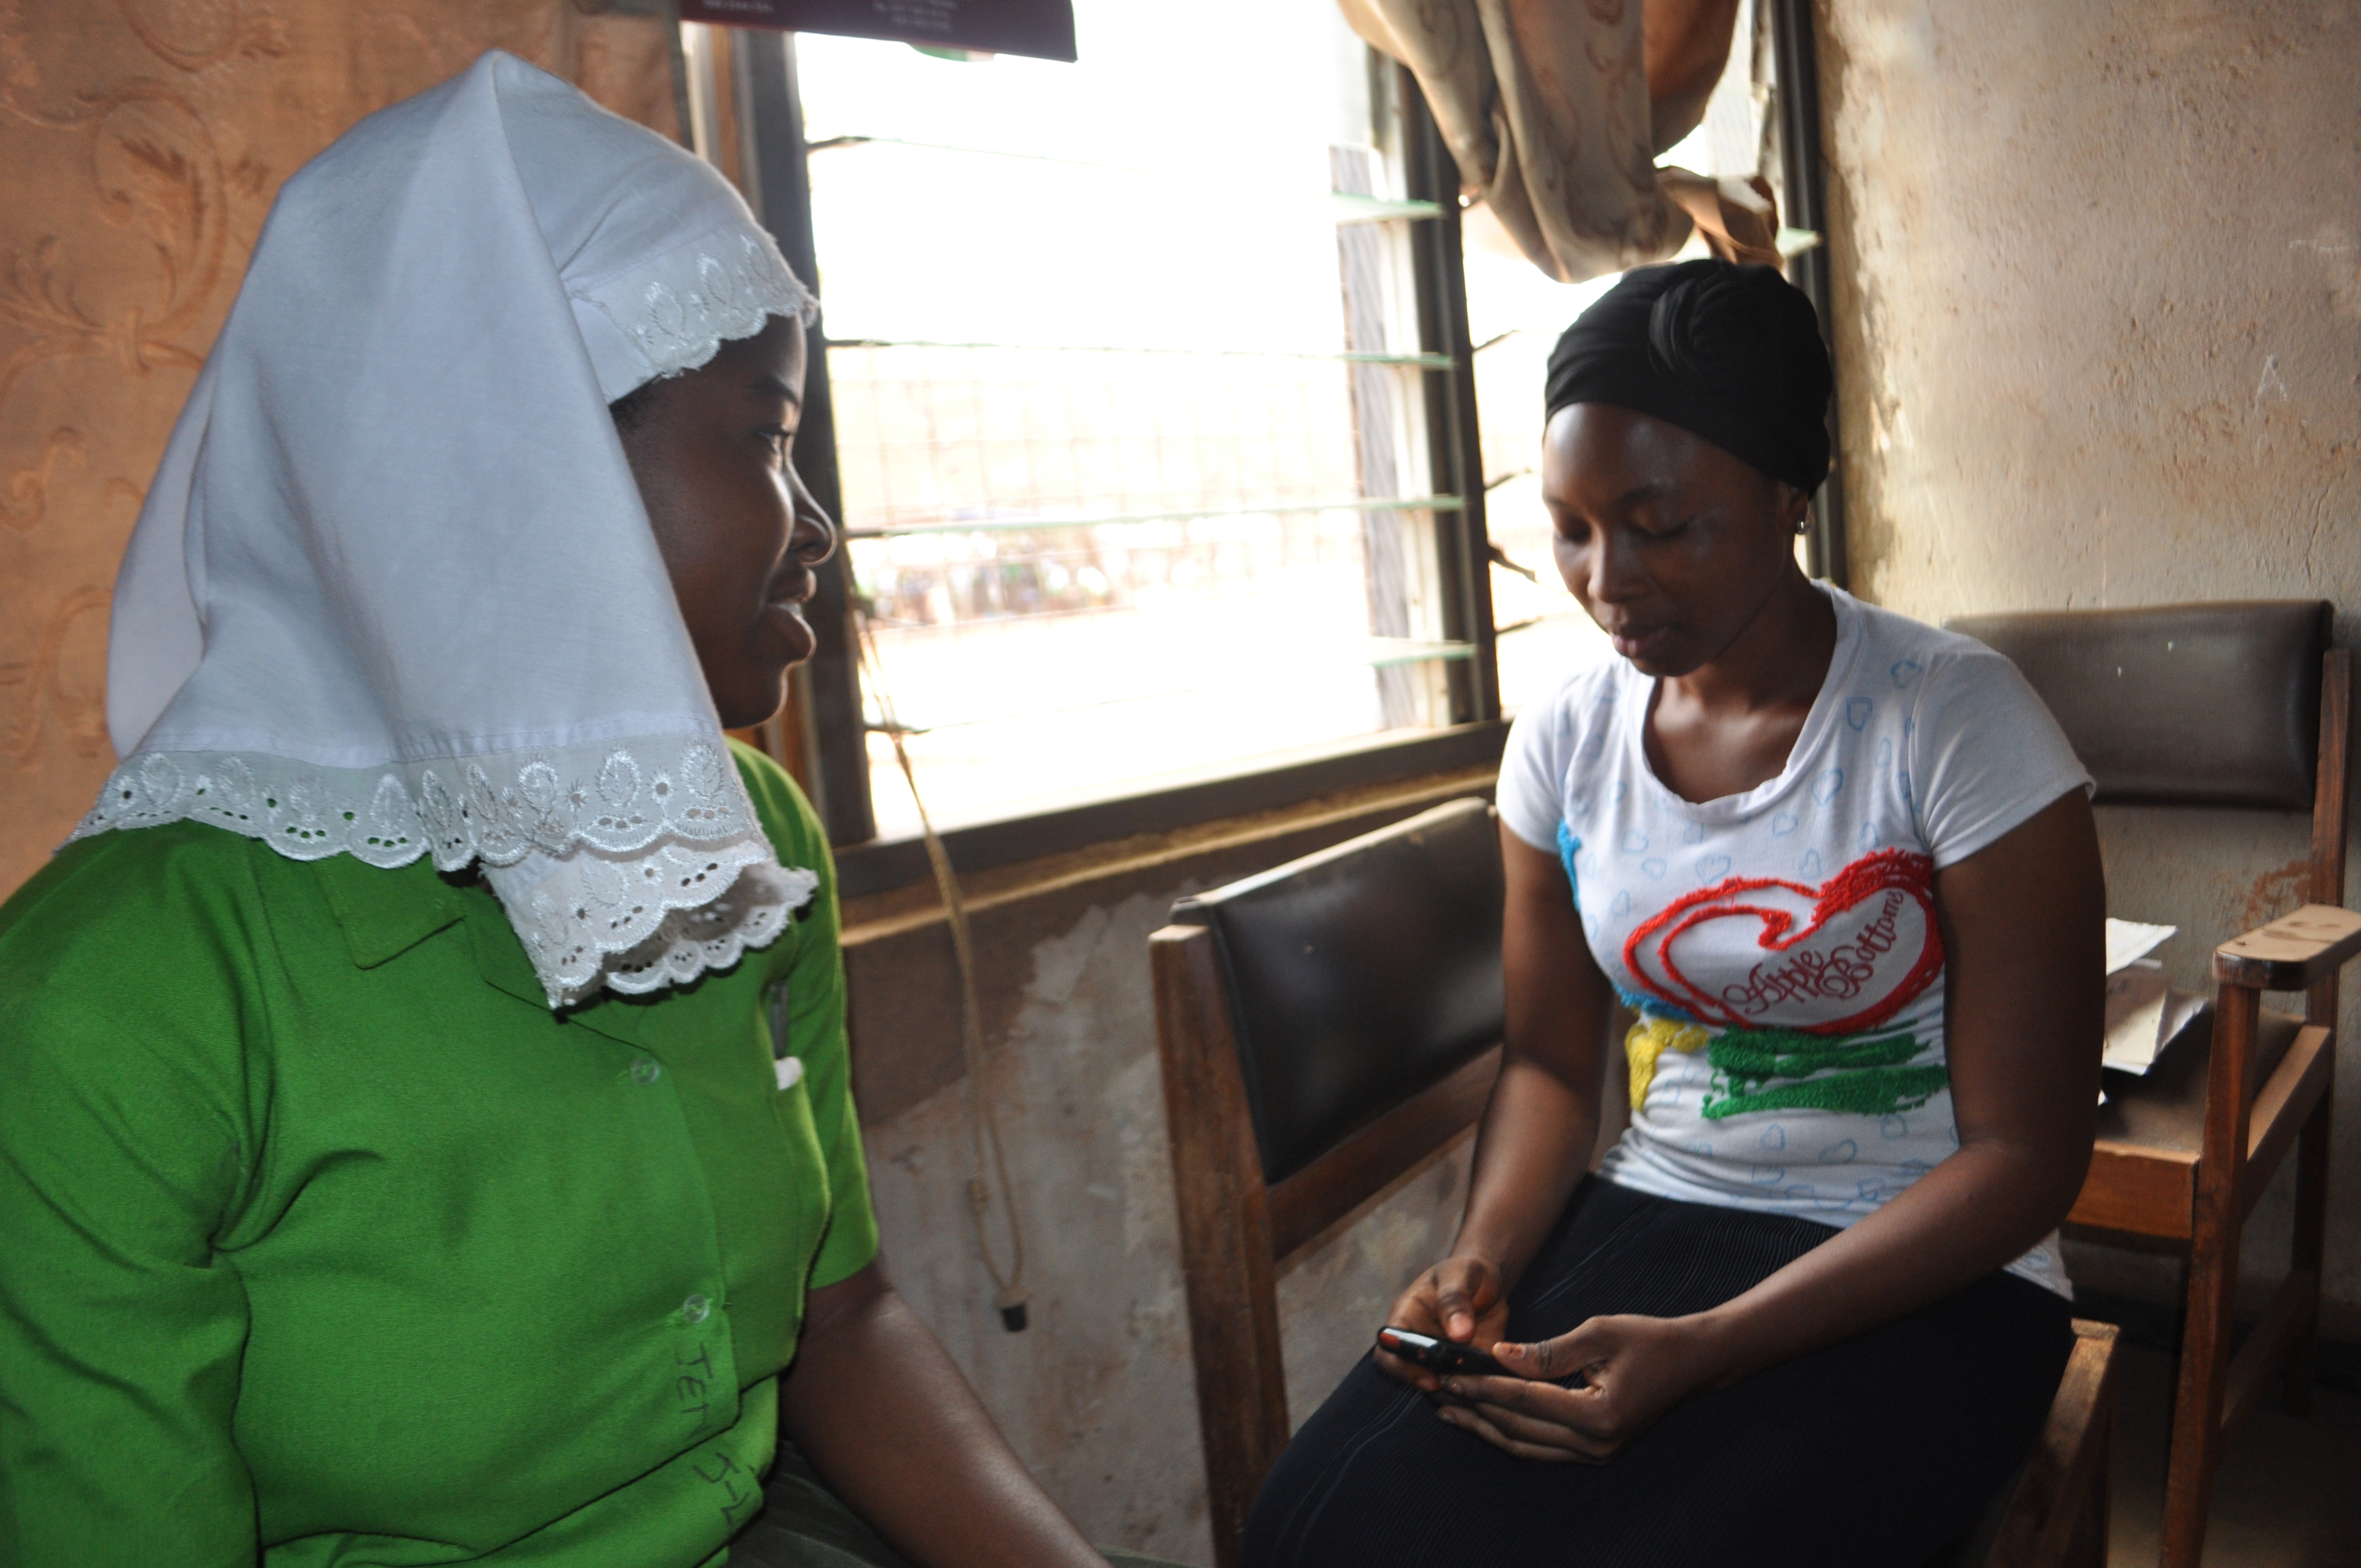 Zubaida, a Camfed trained enumerator, is collecting data for verification in Sagnarigu district in Ghana